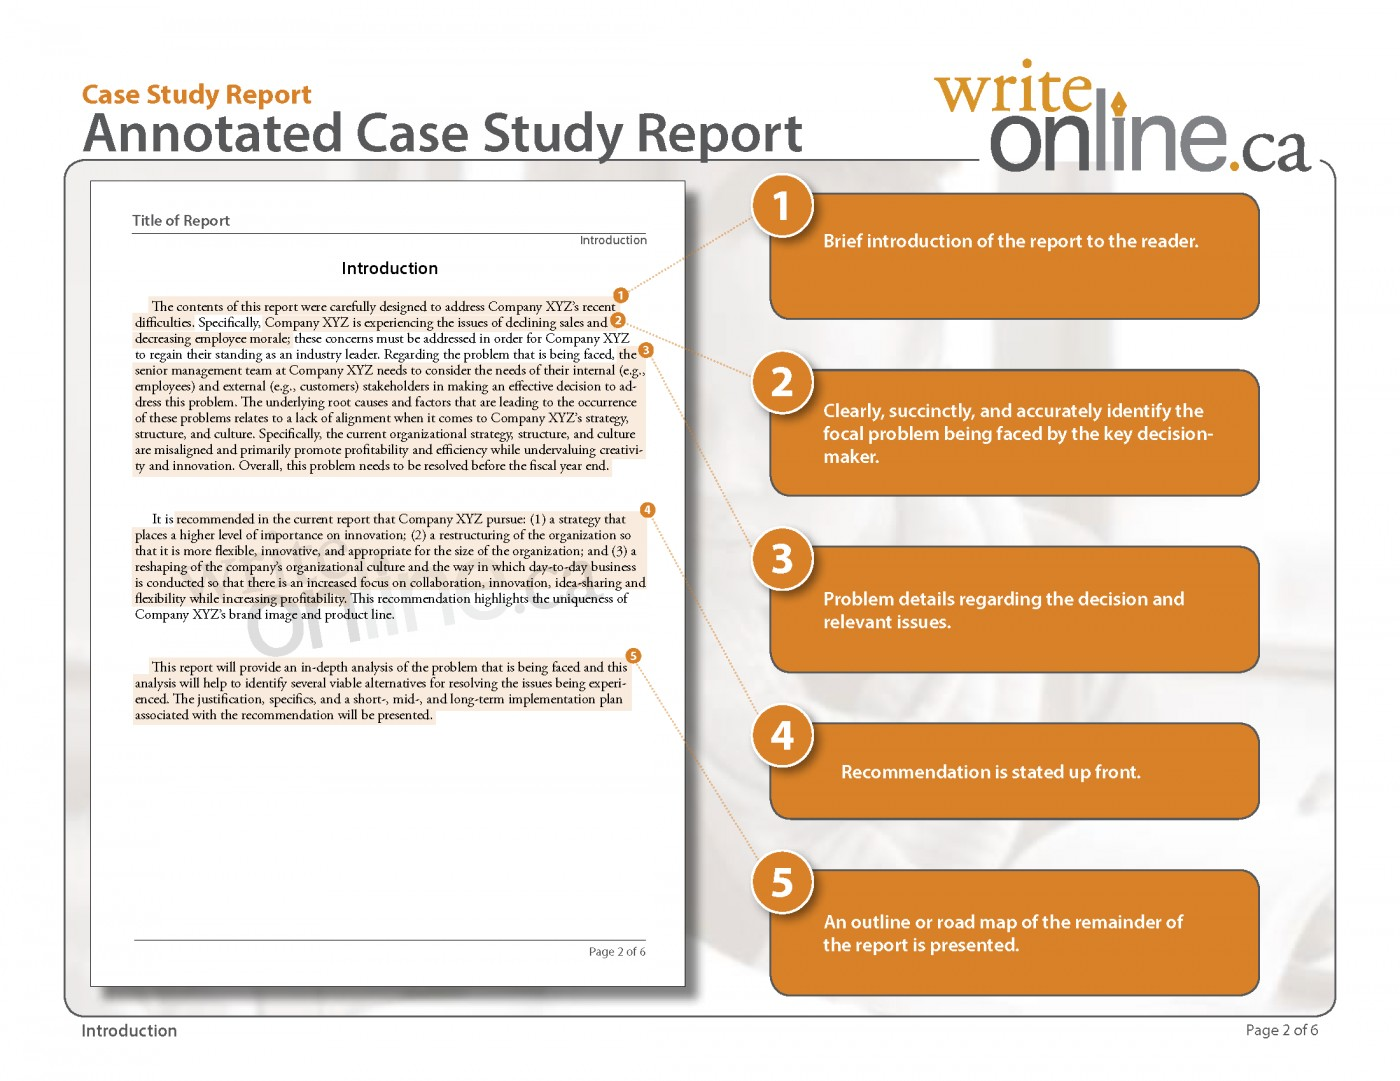 006 Research Paper Casestudy Annotatedfull Page 2 Parts Of And Its Definition Staggering A Pdf 1400